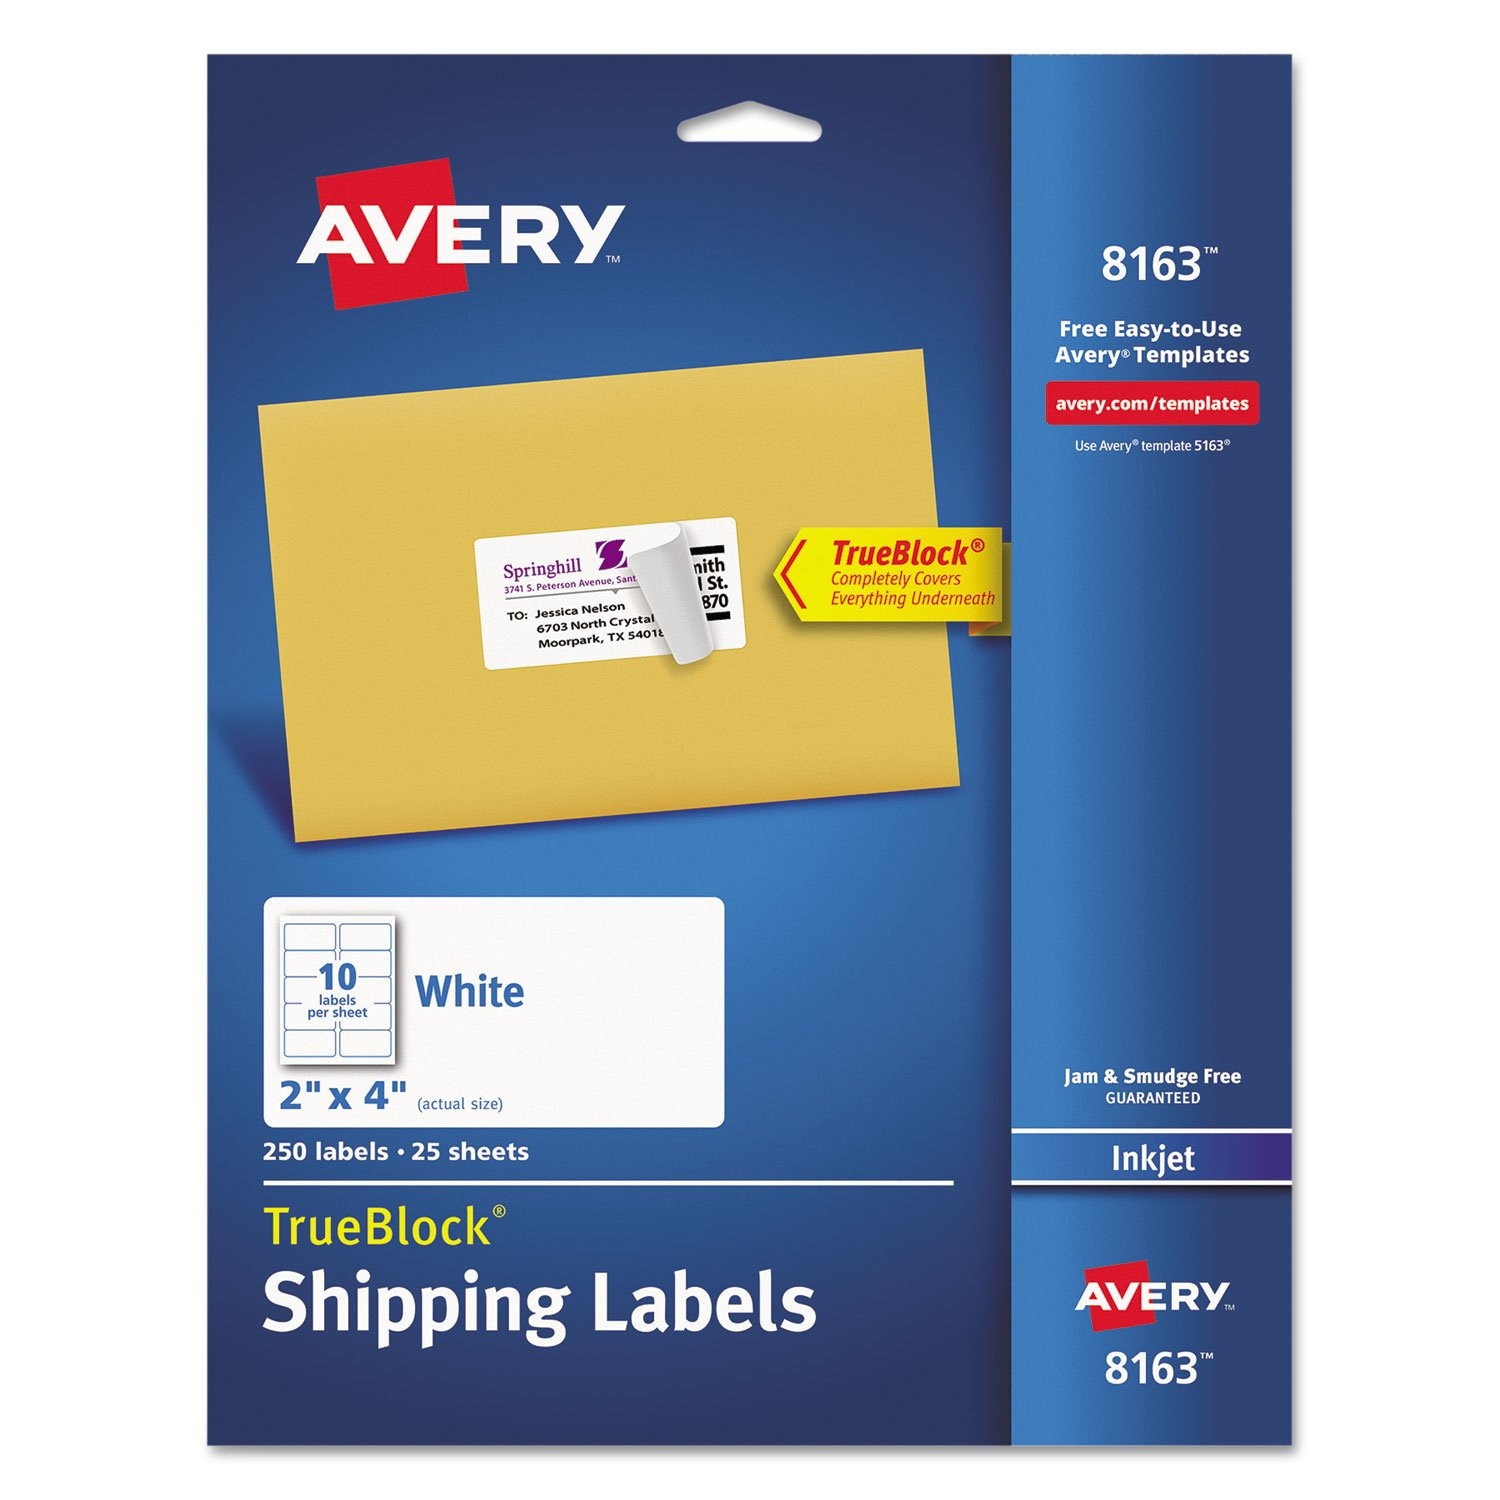 Avery Shipping Label Template 8163